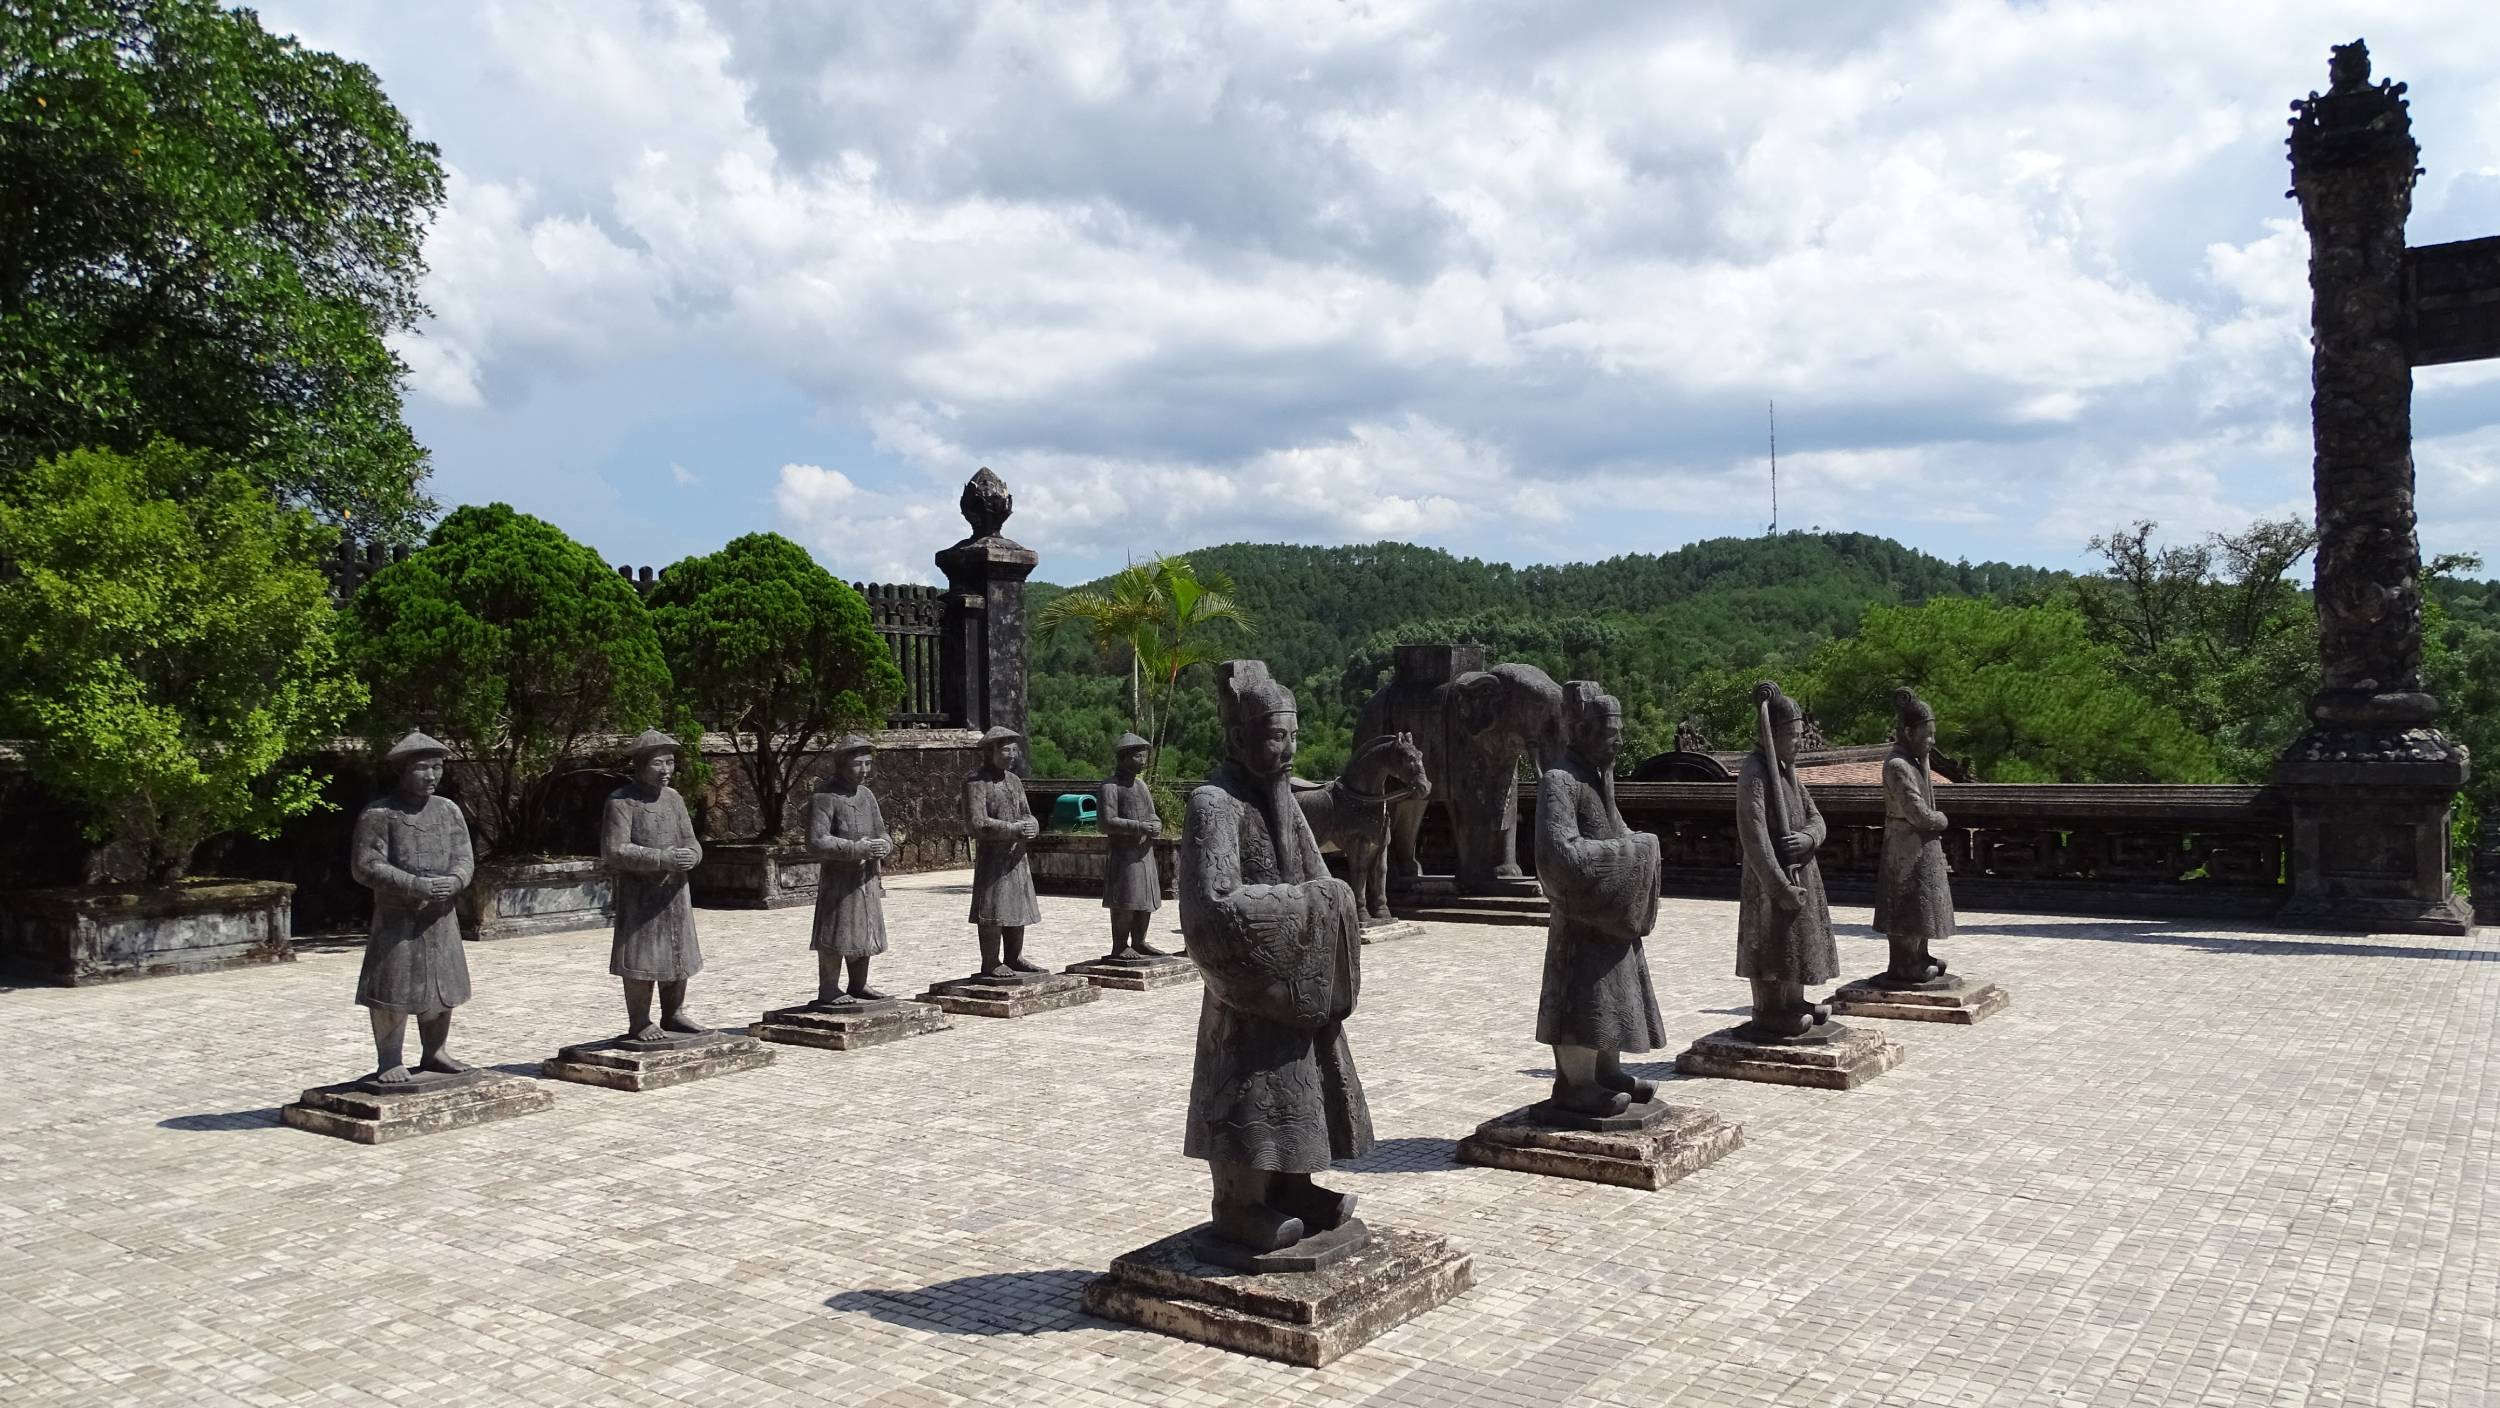 Two rows of concrete statues of mandarins and their servants standing at the platform at Kai Dinh tomb